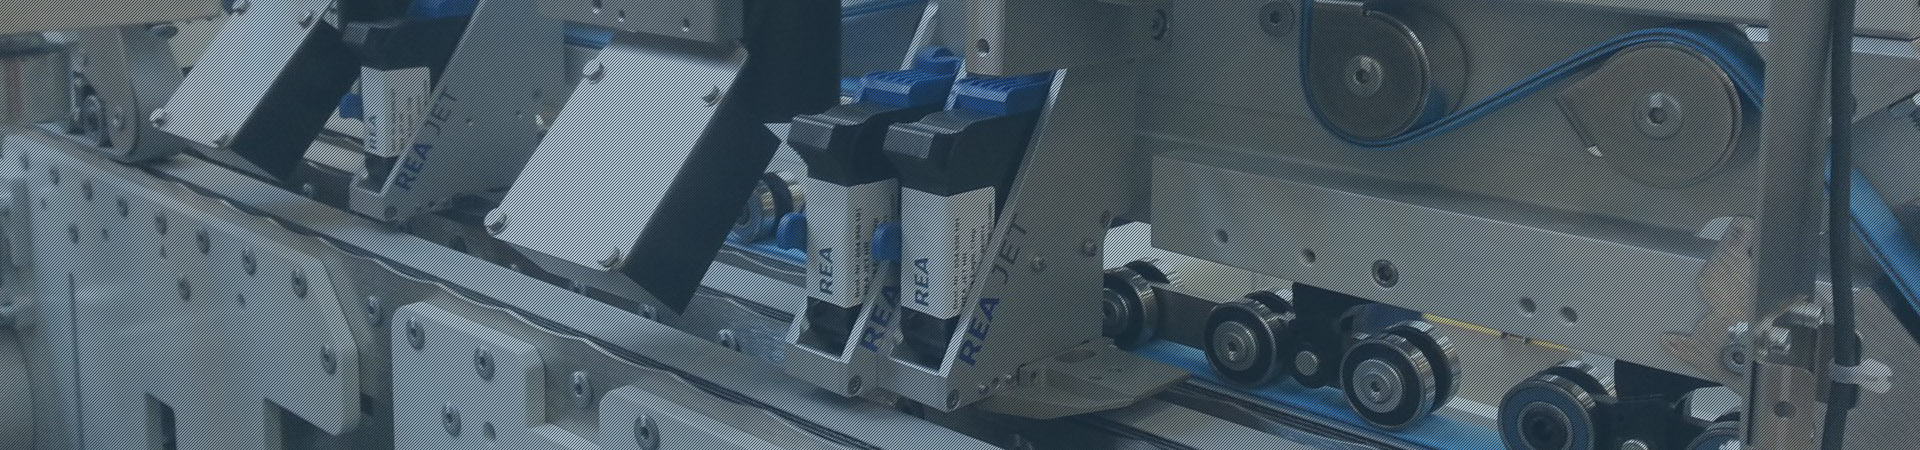 High resolution printer for marking folding boxes from above - Header - REA JET HR